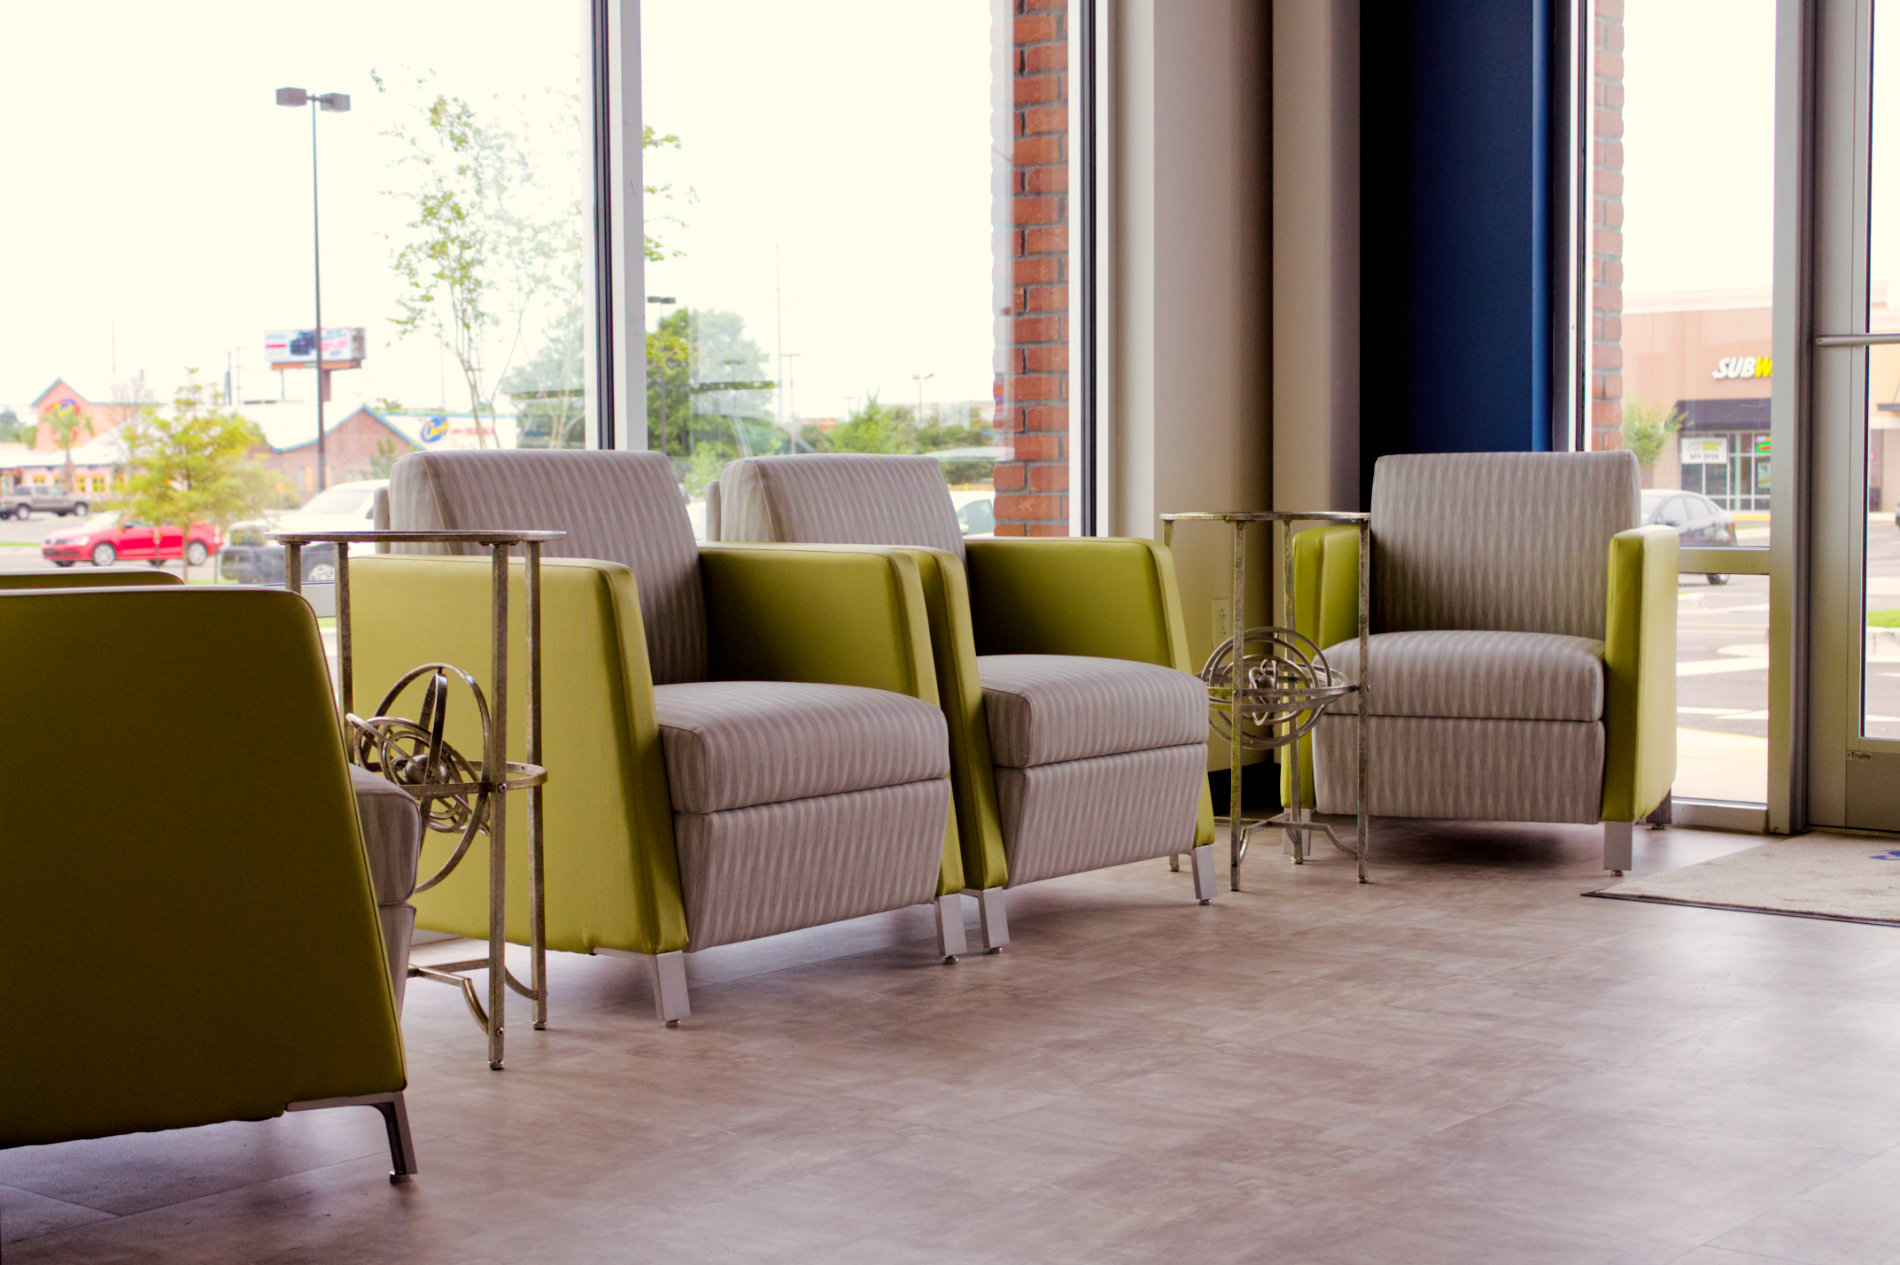 Image of Louge Seating